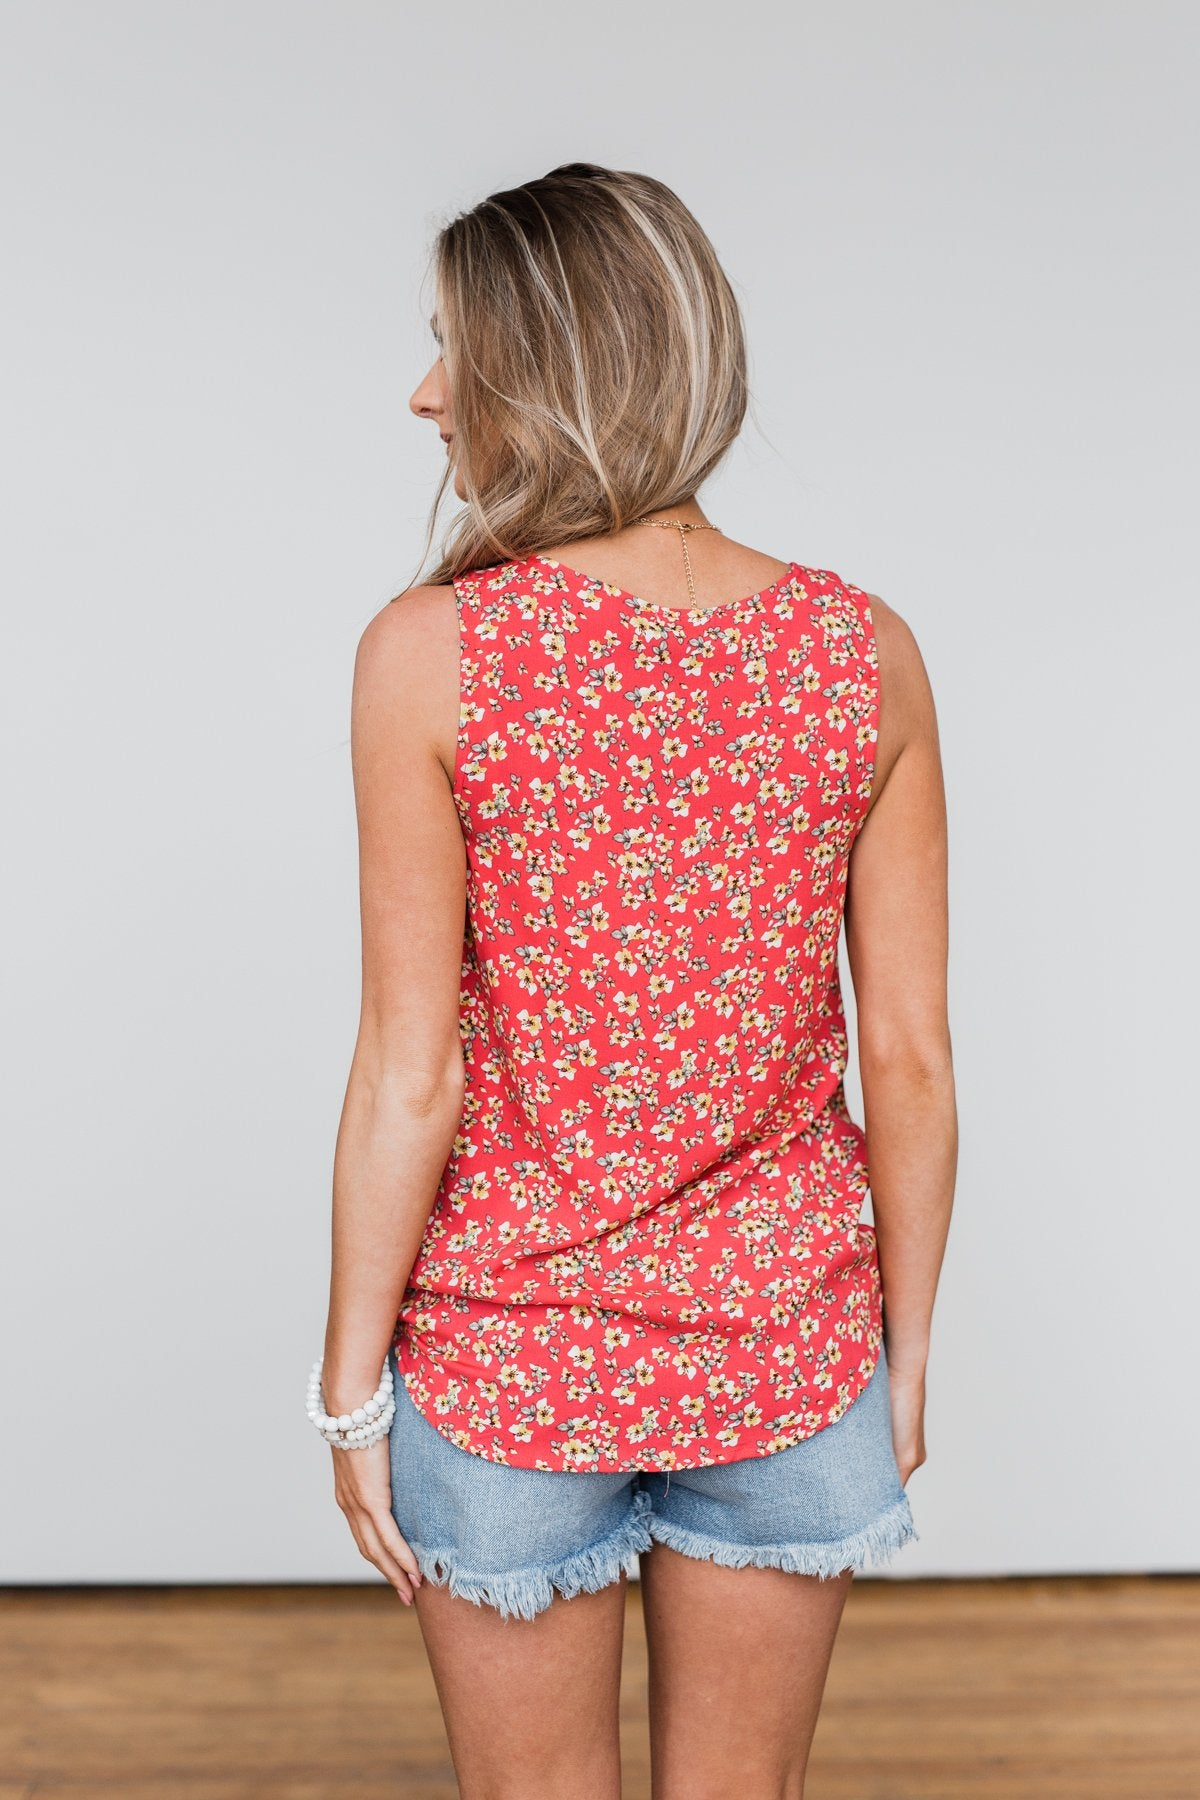 Knowing You Floral Wrap Tank Top- Coral